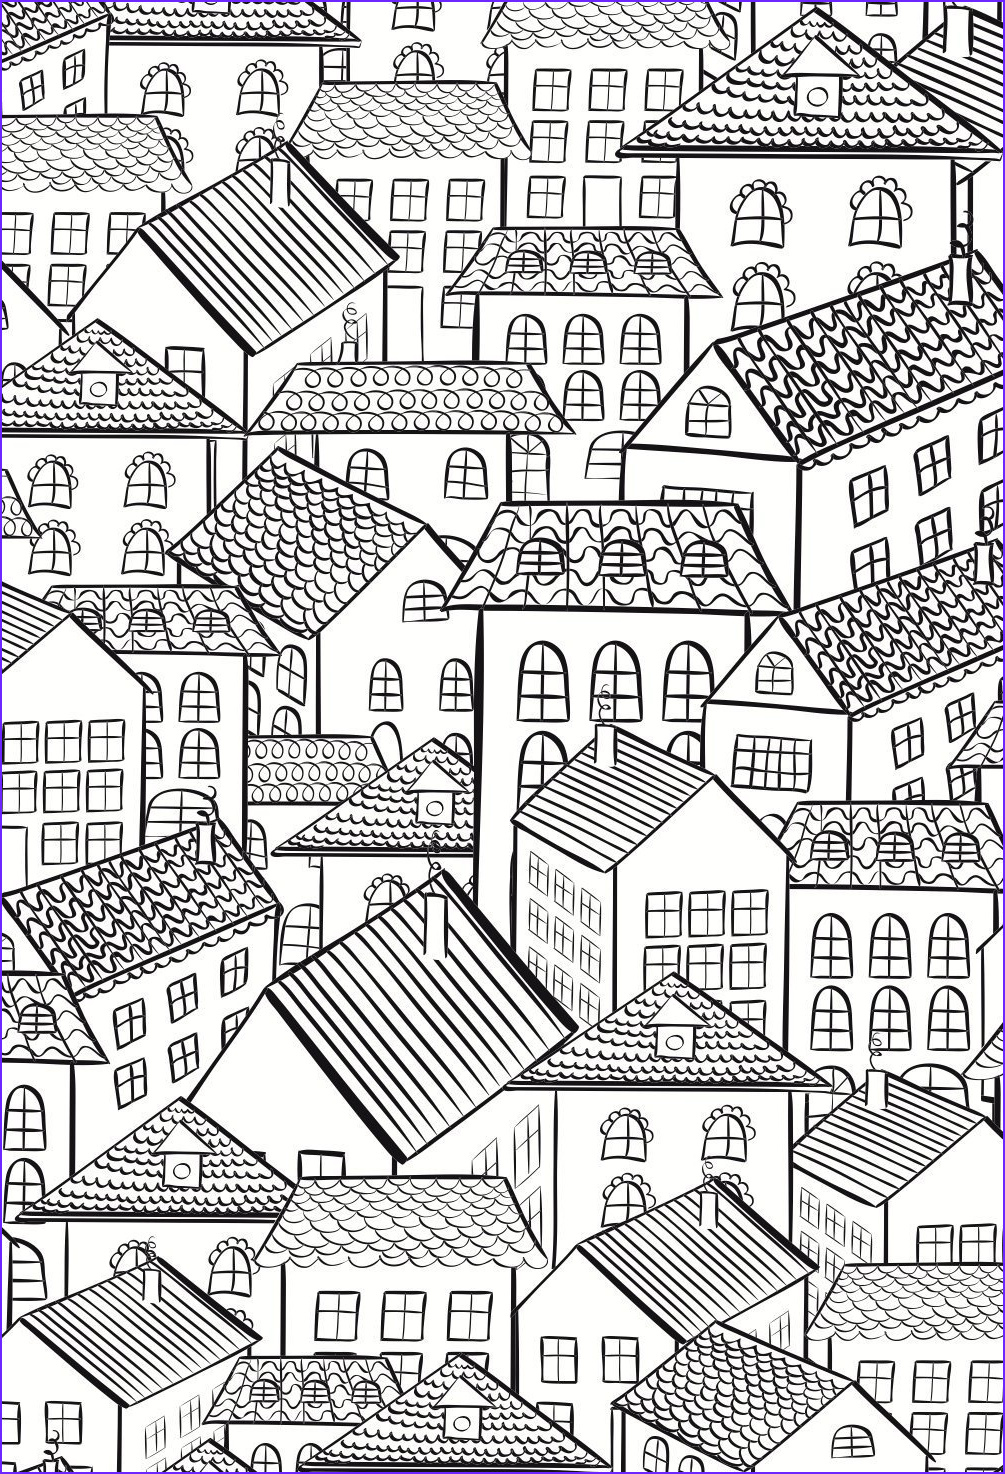 Printable Adult Coloring Awesome Photos Colouring Books for Adults In the Playroom